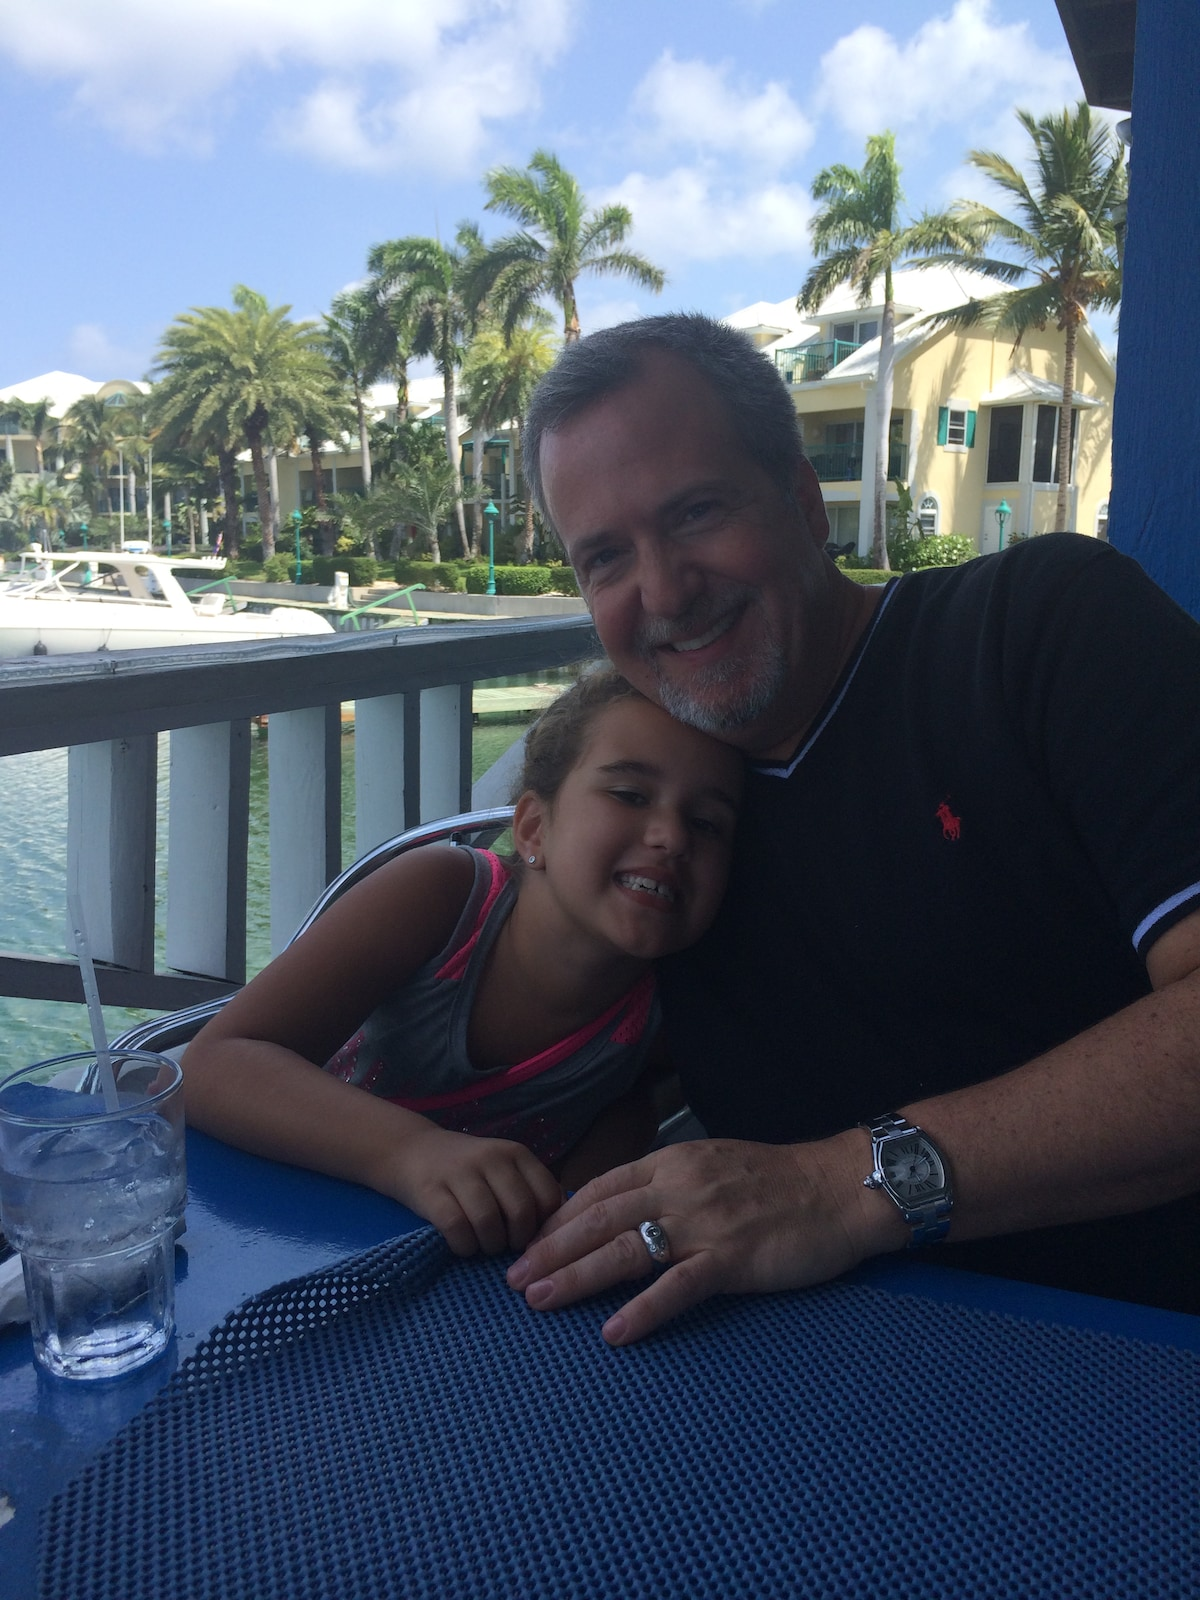 Hal From Providenciales and West Caicos, Turks and Caicos Islands